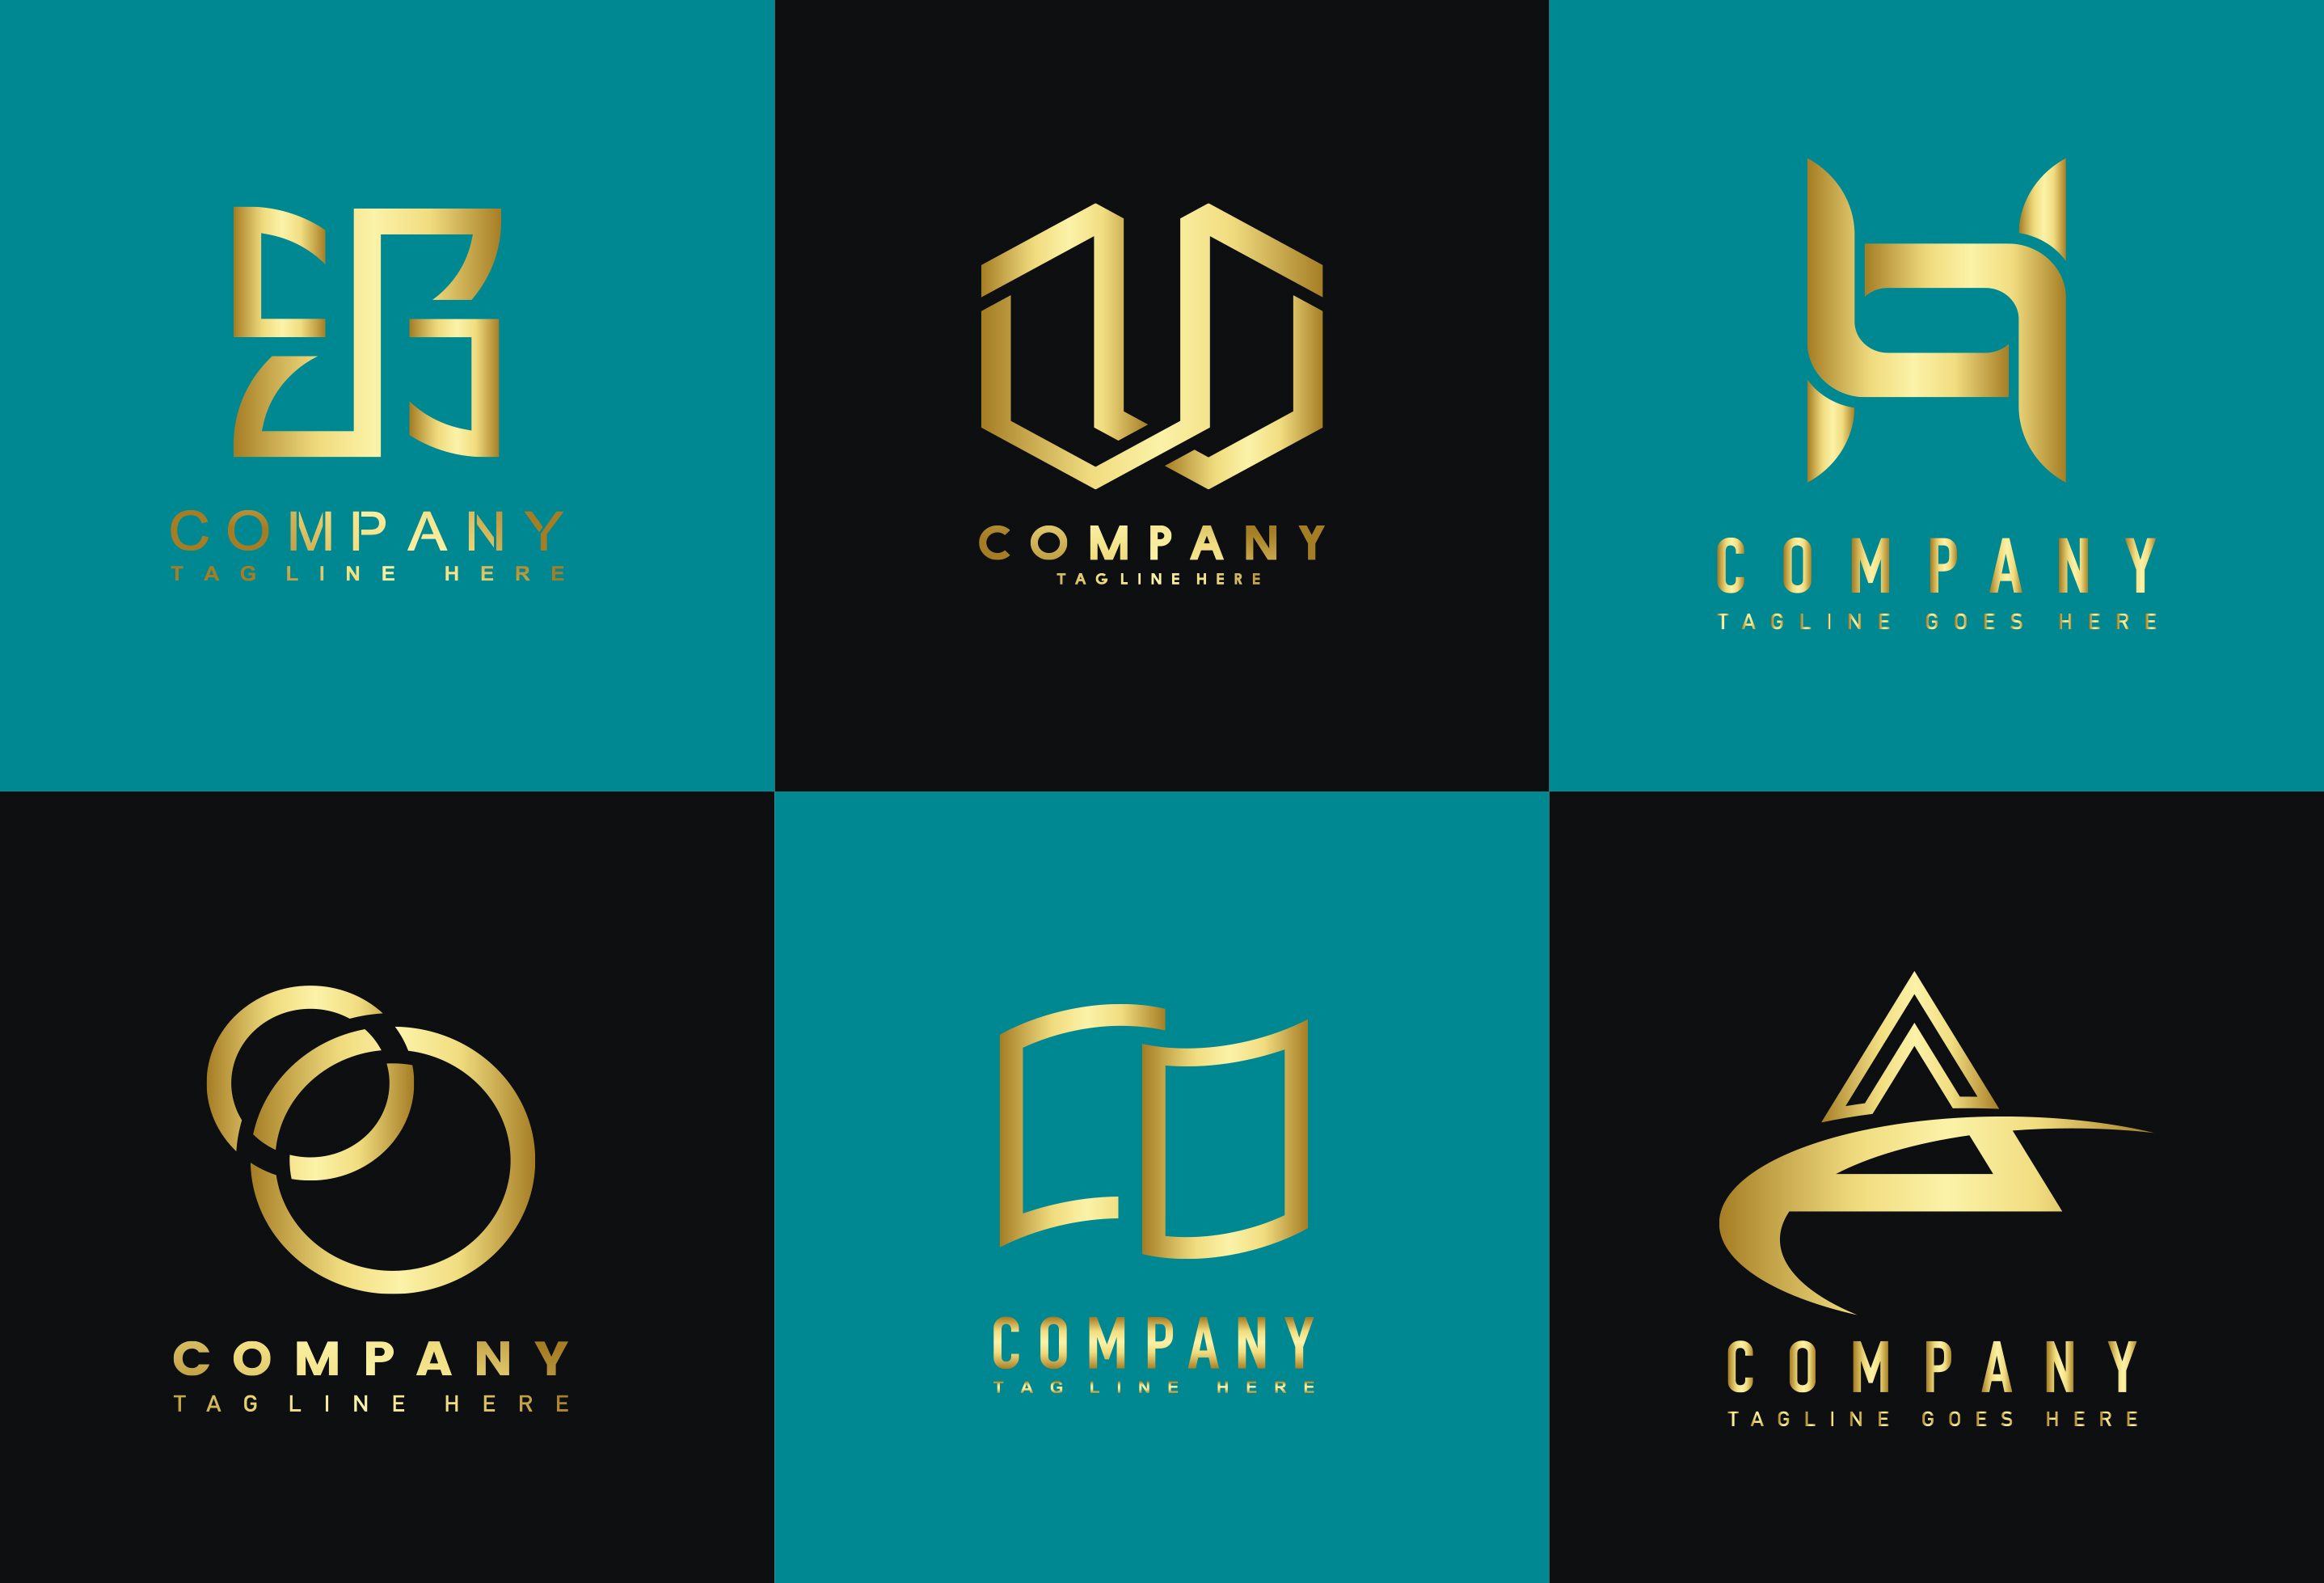 I will make modern flat minimalist logo and branding design